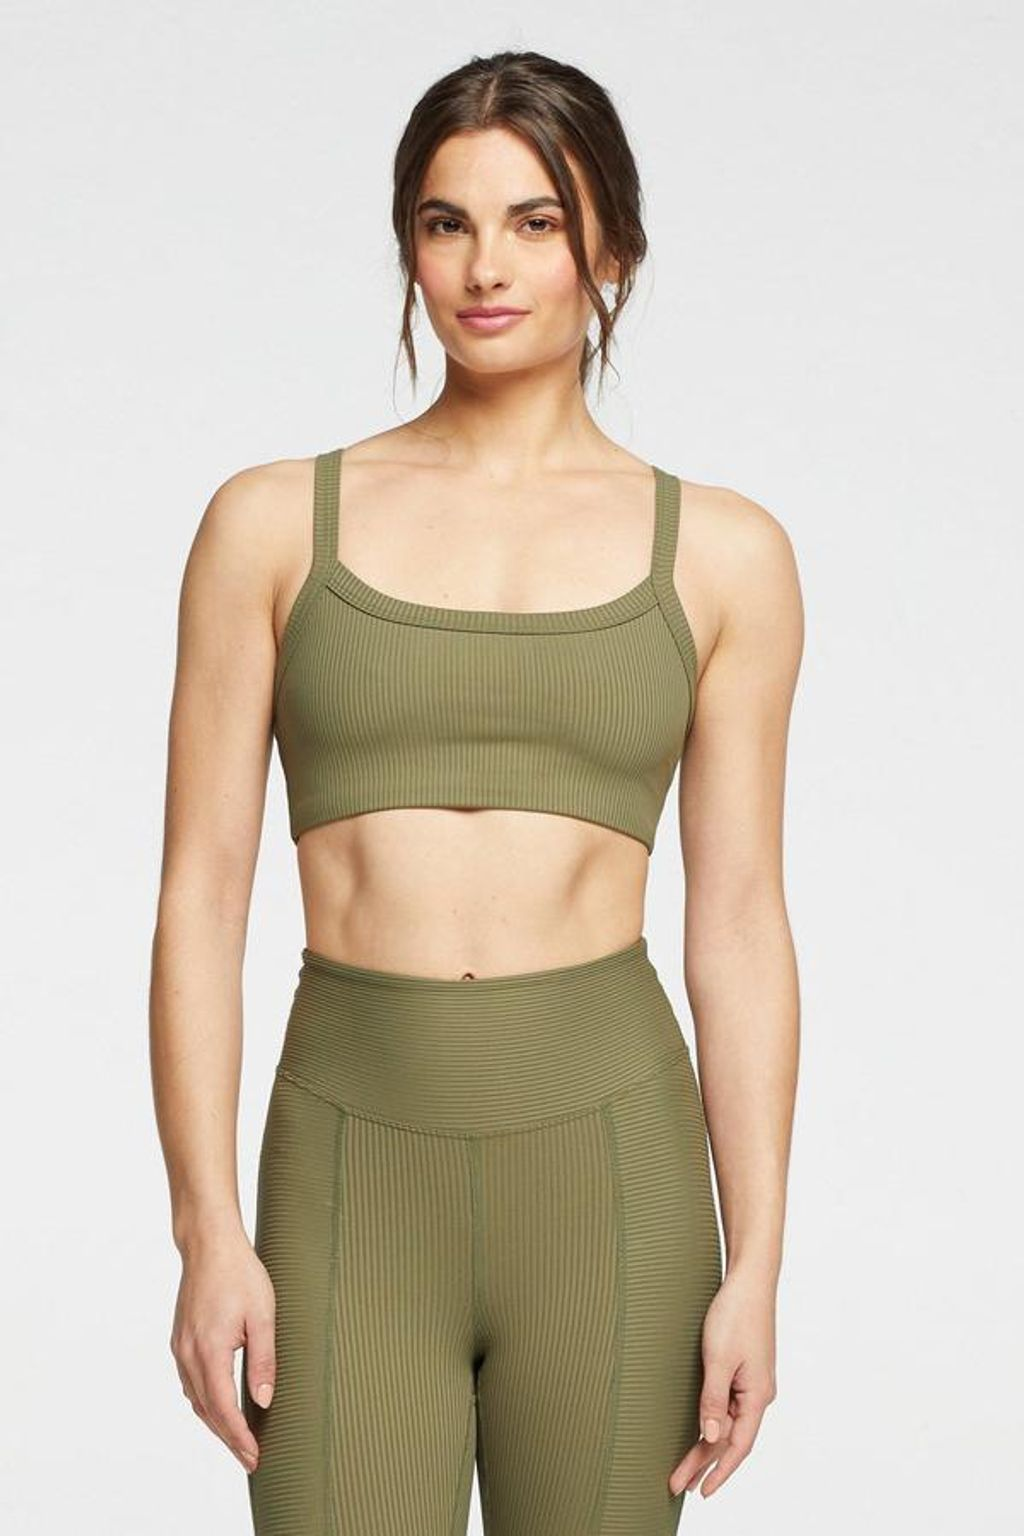 ribbed-bralette-20-sports-bra-year-of-ours-olive-extra-small-9_600x.jpg